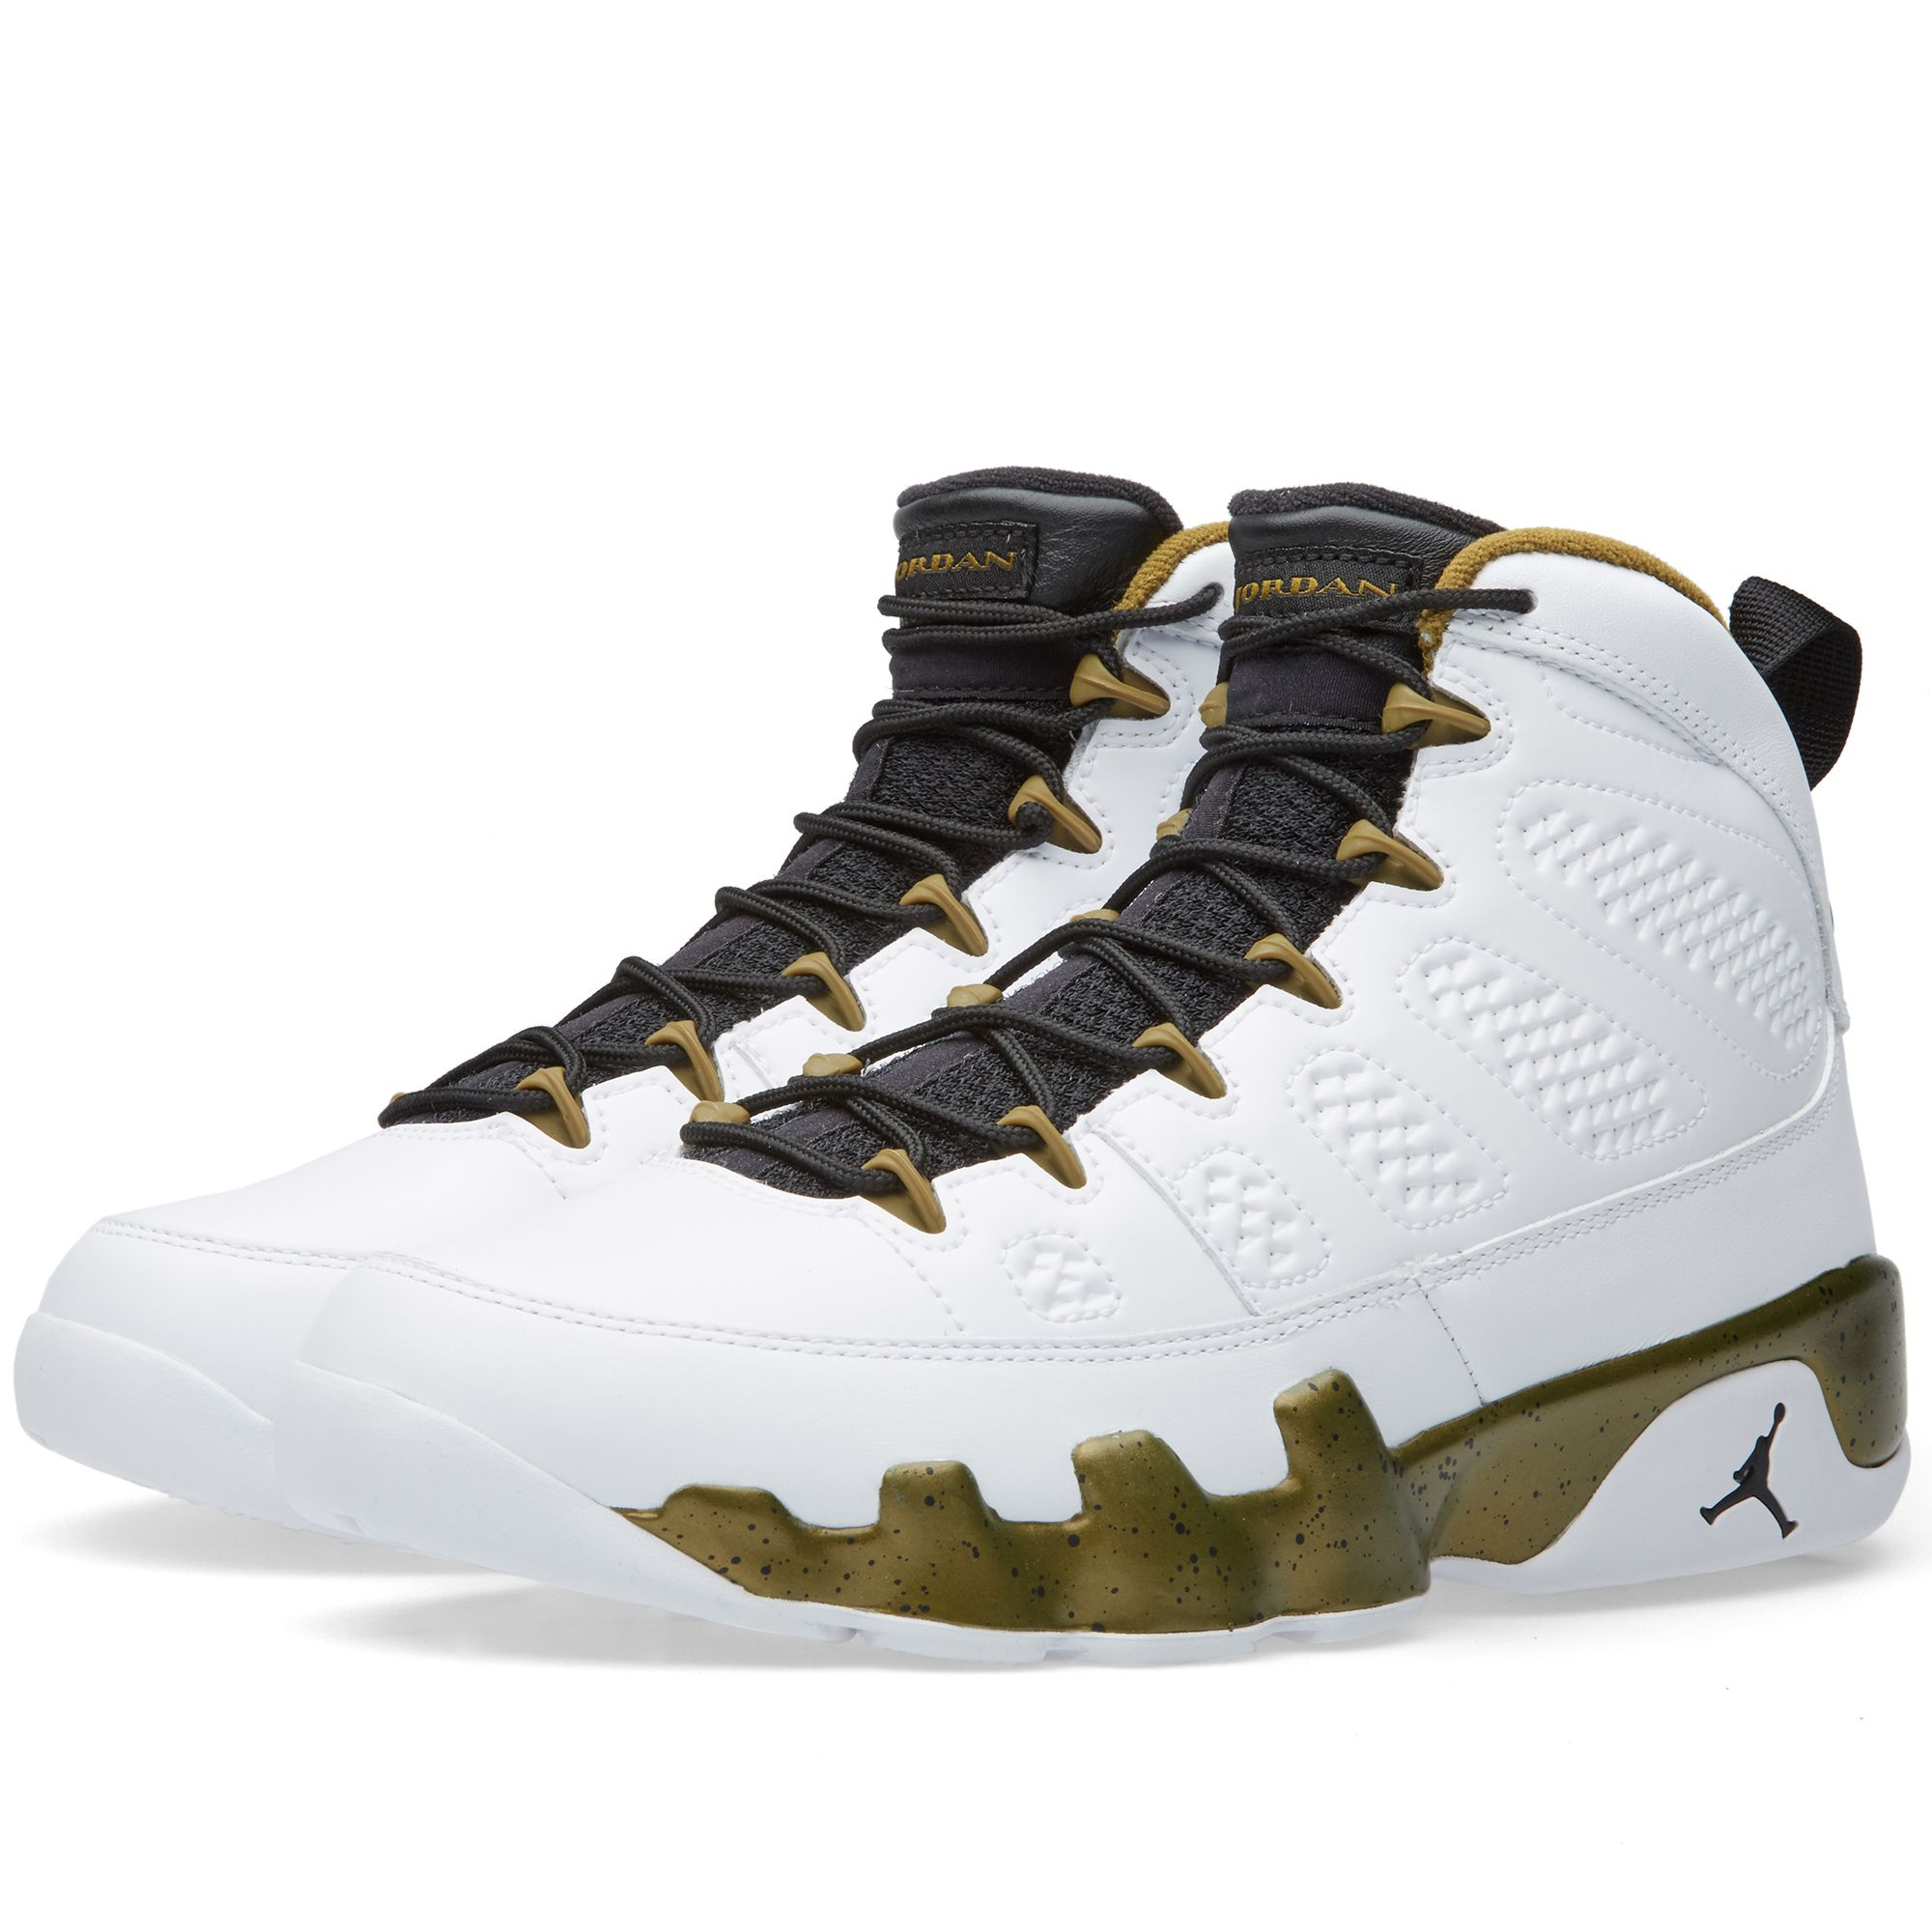 buy popular c7f65 f1db6 air jordan 9   Nike Air Jordan 9 Retro The Spirit (White, Black Militia  Green)